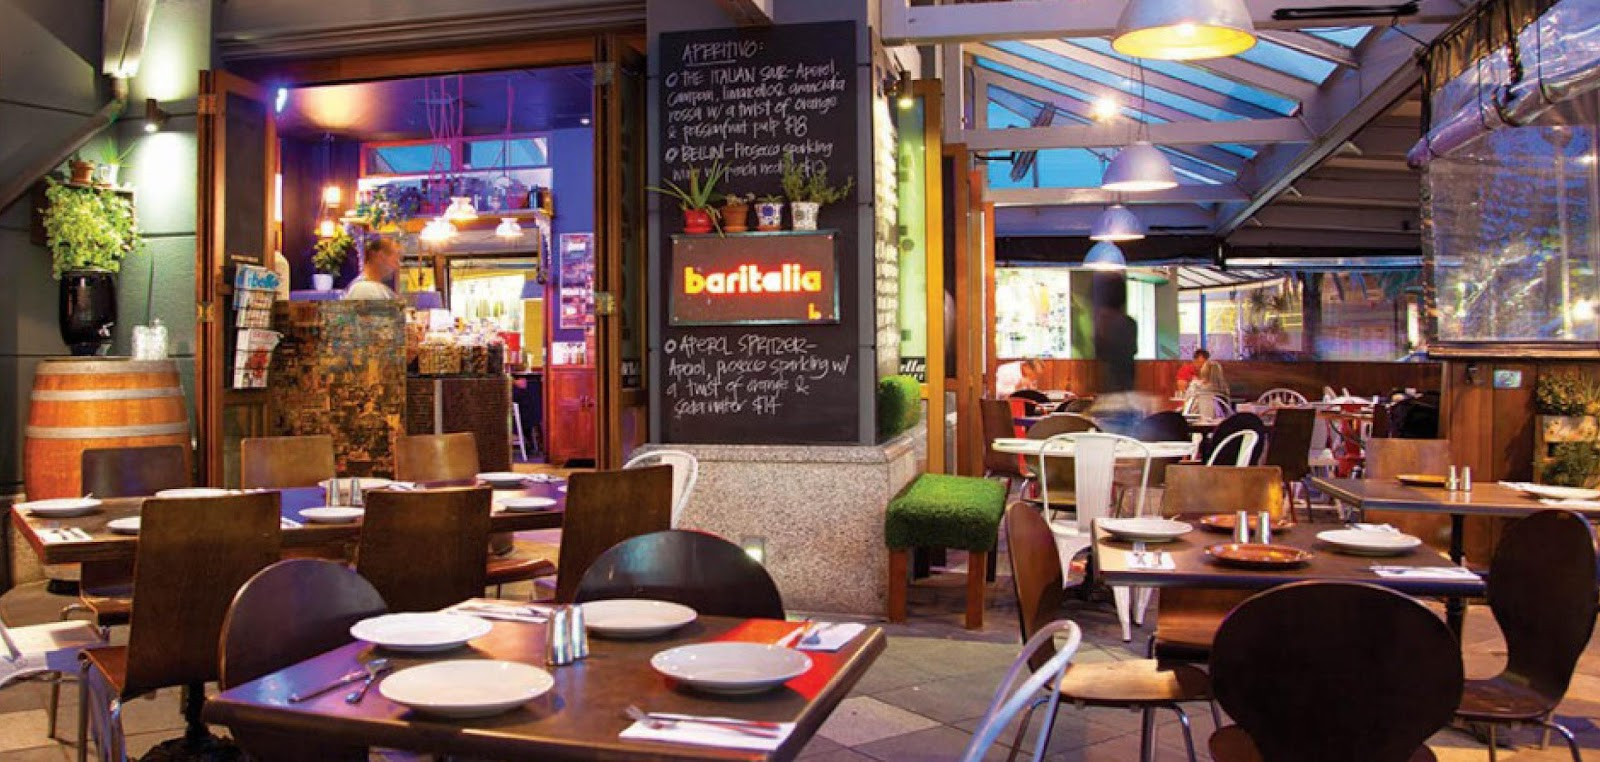 Baritalia Restaurant offers Italian cuisine with a difference.